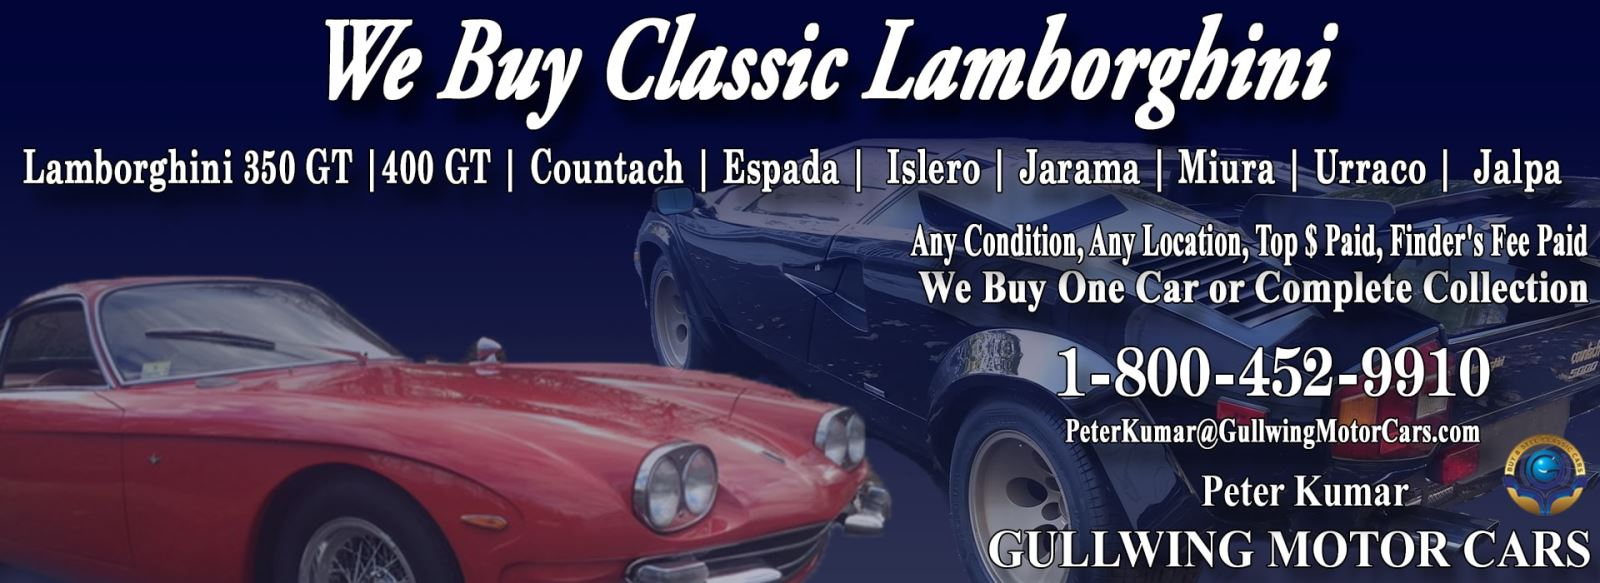 Classic Lamborghini for sale, we buy vintage Lamborghini. Call Peter Kumar. Gullwing Motor